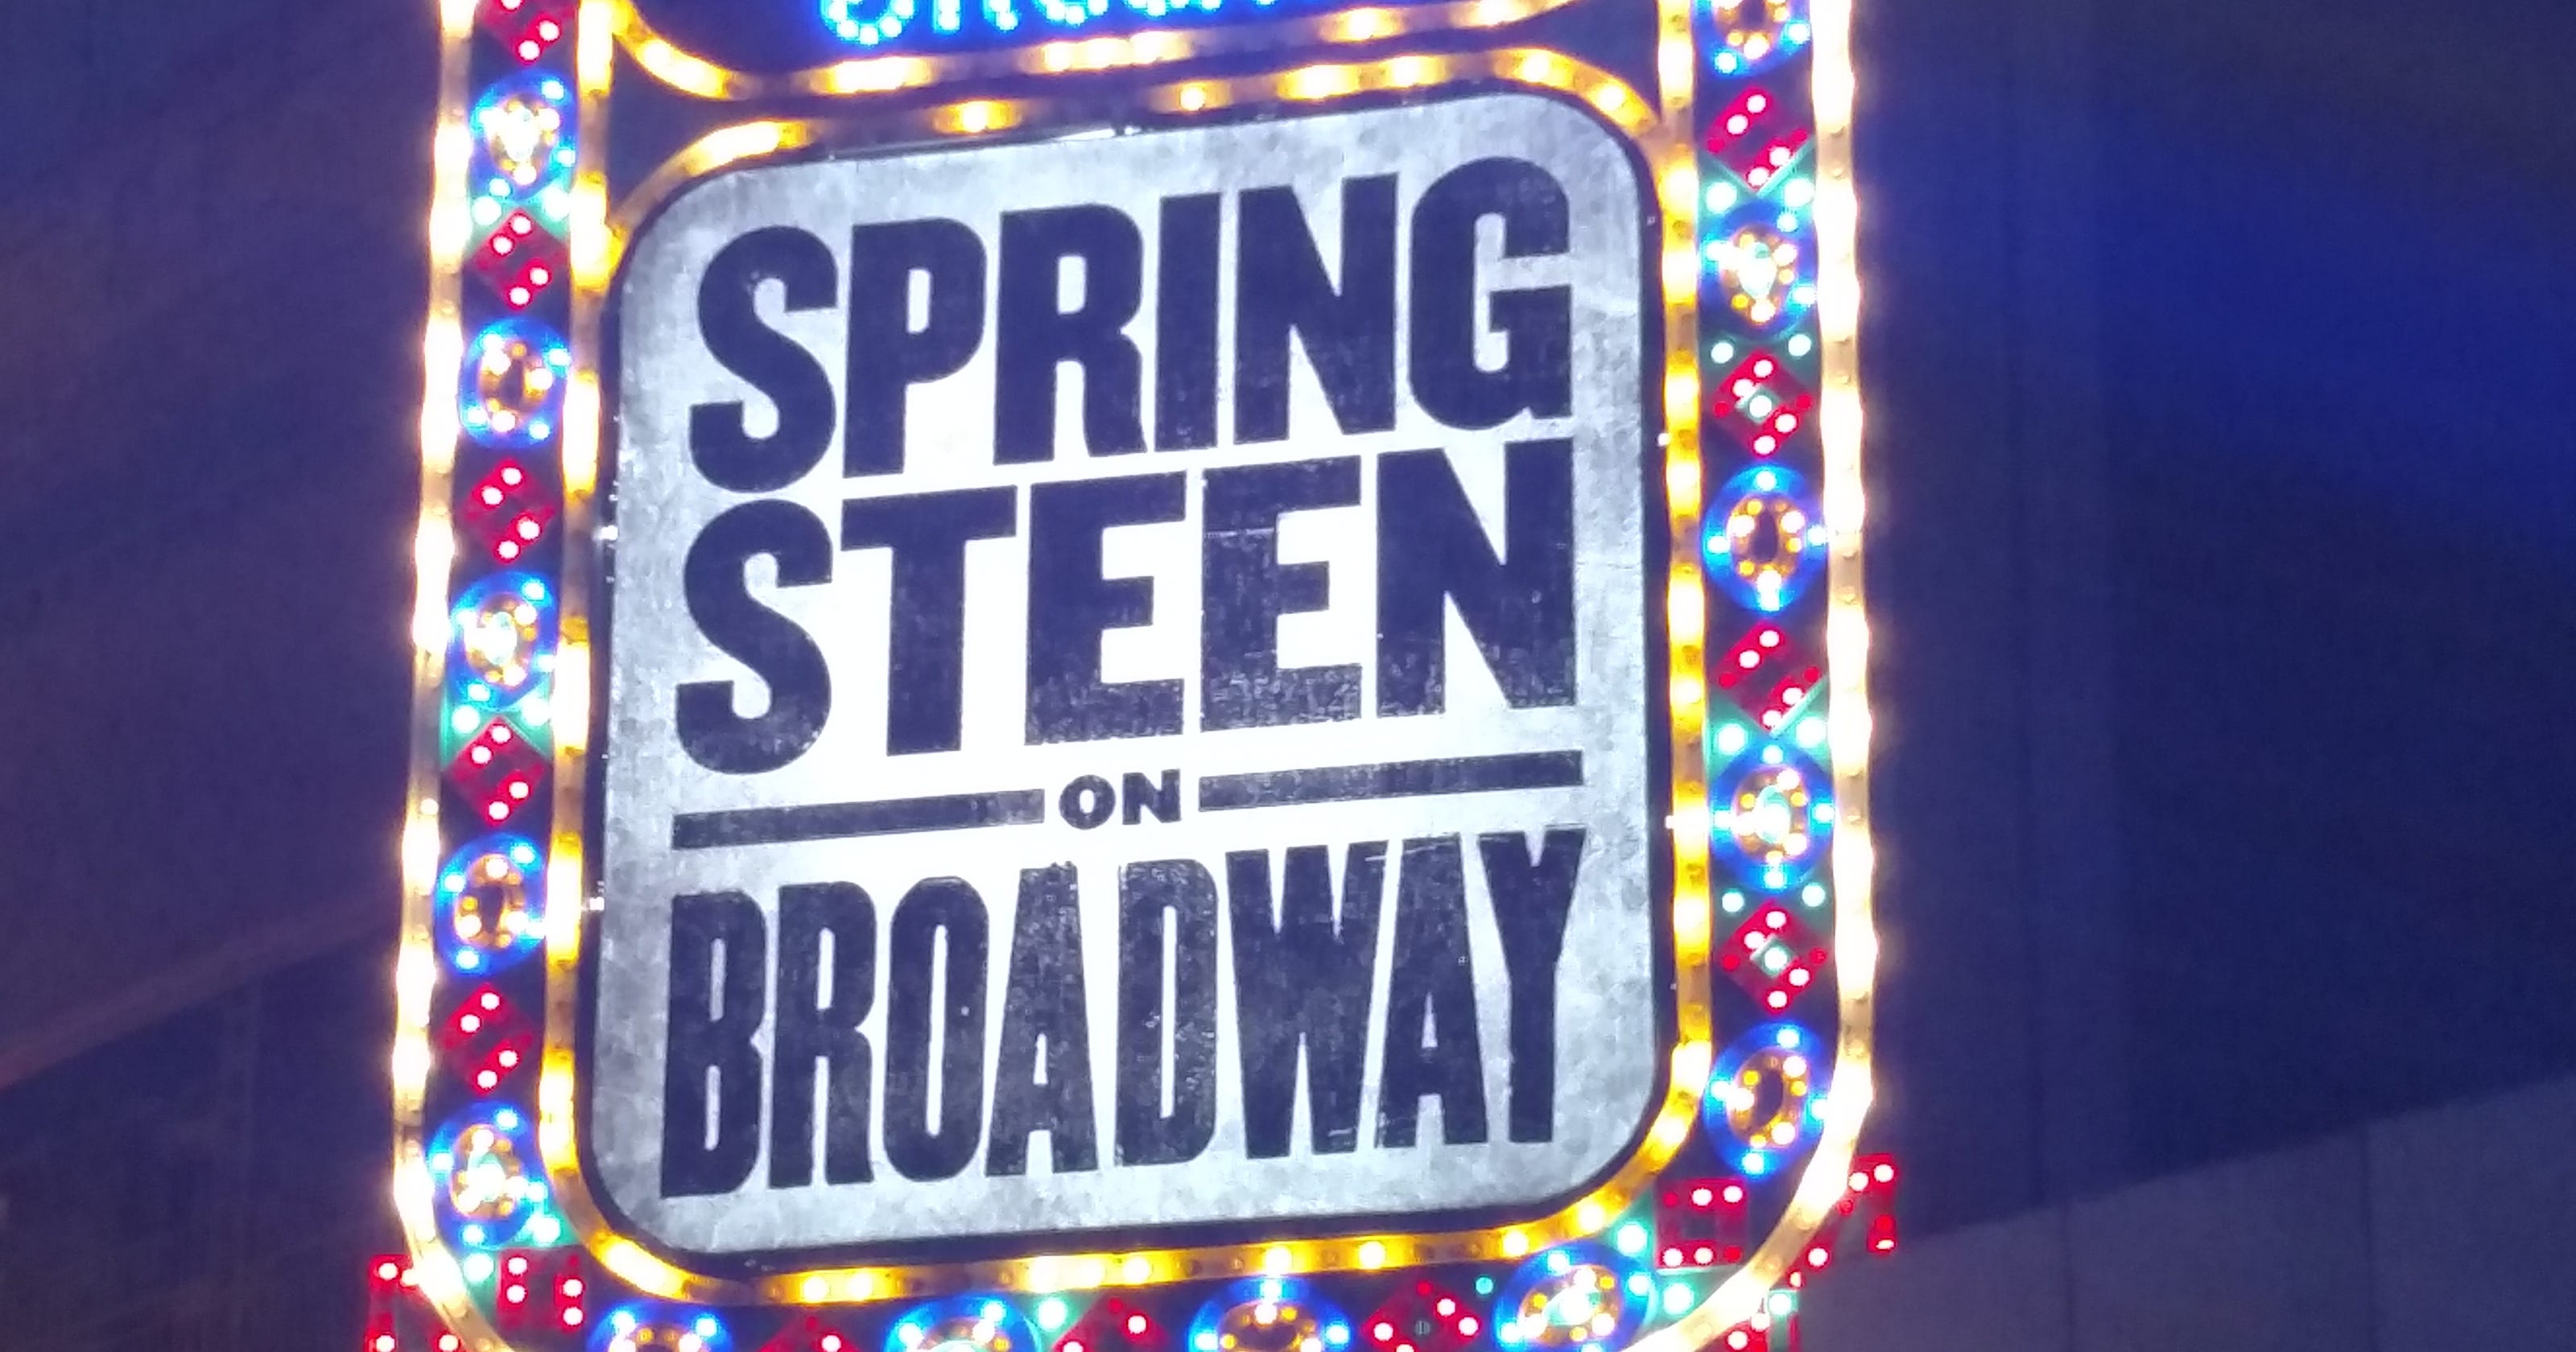 Bruce Springsteen on Broadway: Everything you need to know